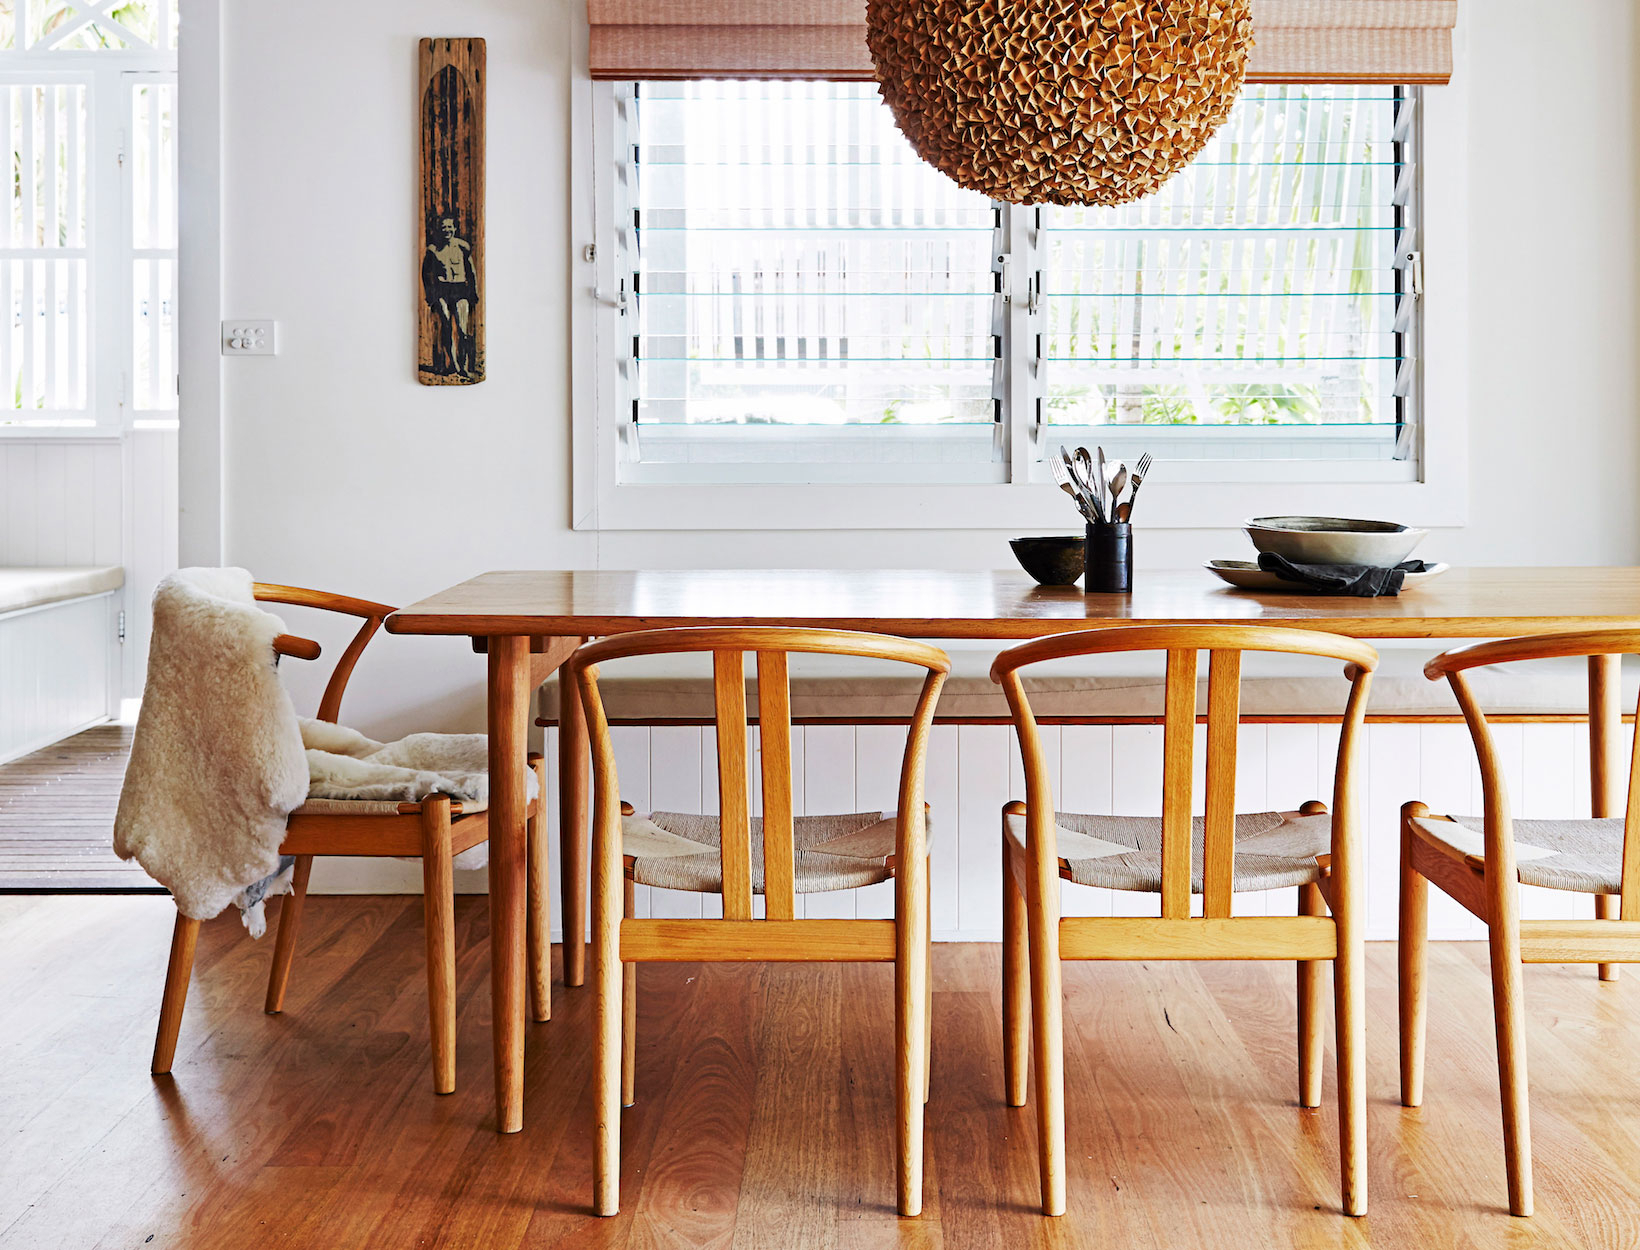 8 Design Professionals On Their Favorite Dining Tables | Goop Inside Recent West Hill Family Table 3 Piece Dining Sets (Photo 9 of 20)